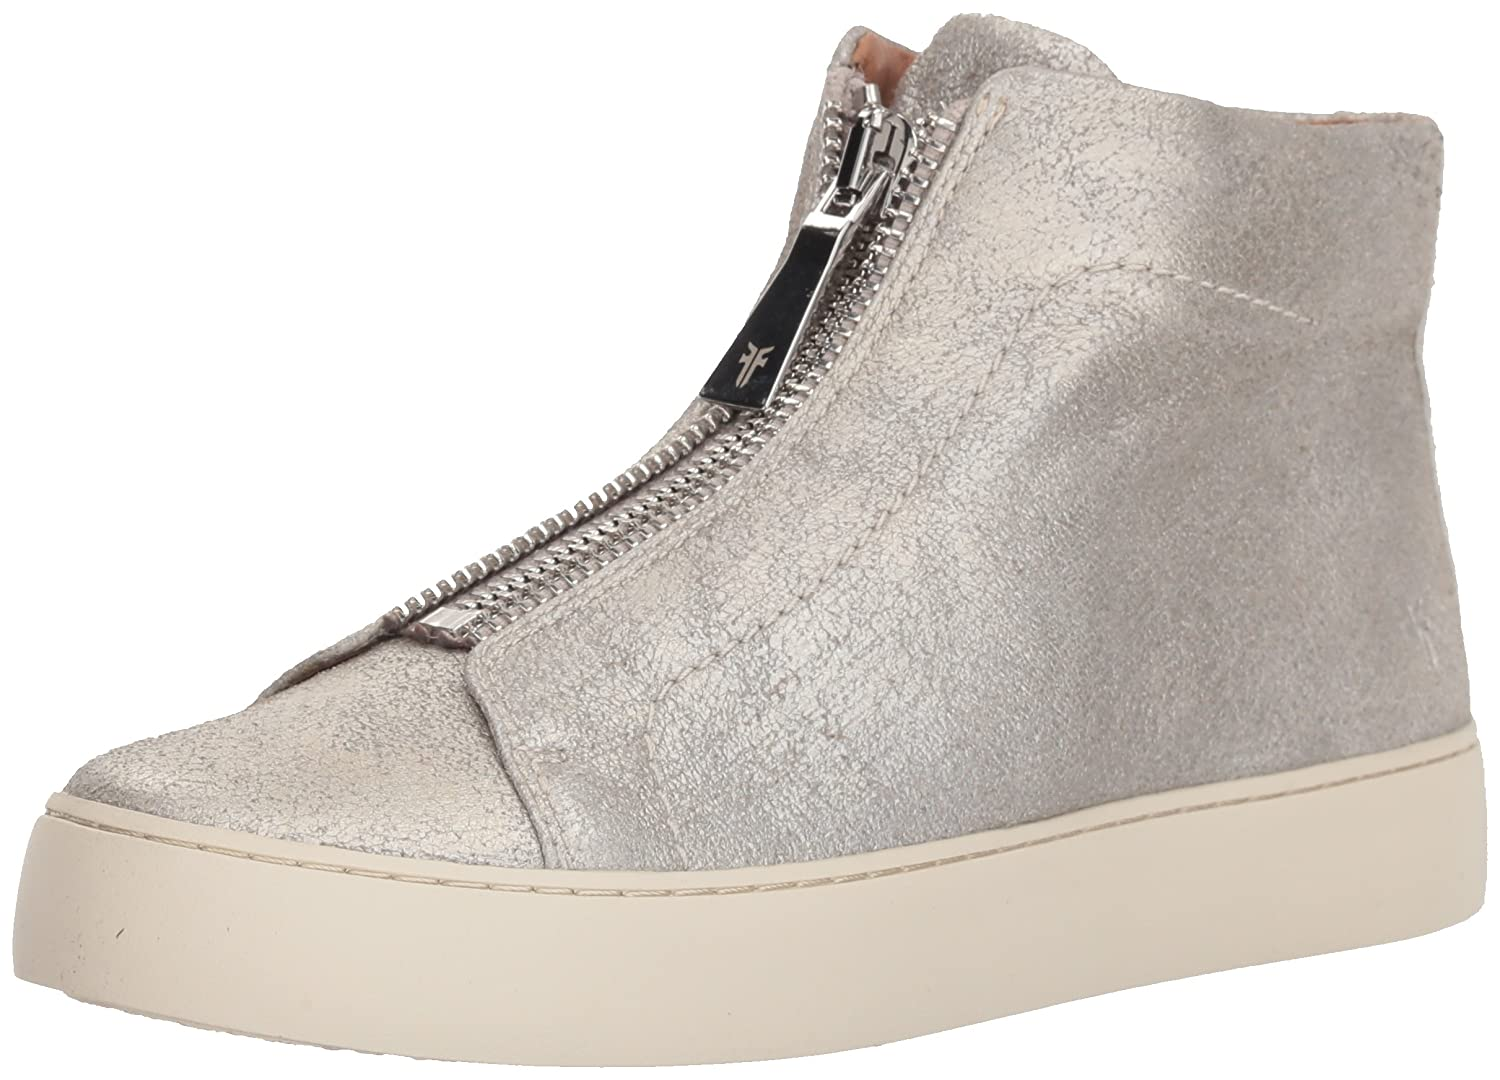 FRYE Women's Lena Zip High Fashion Sneaker B07215R33M 9.5 B(M) US|Silver